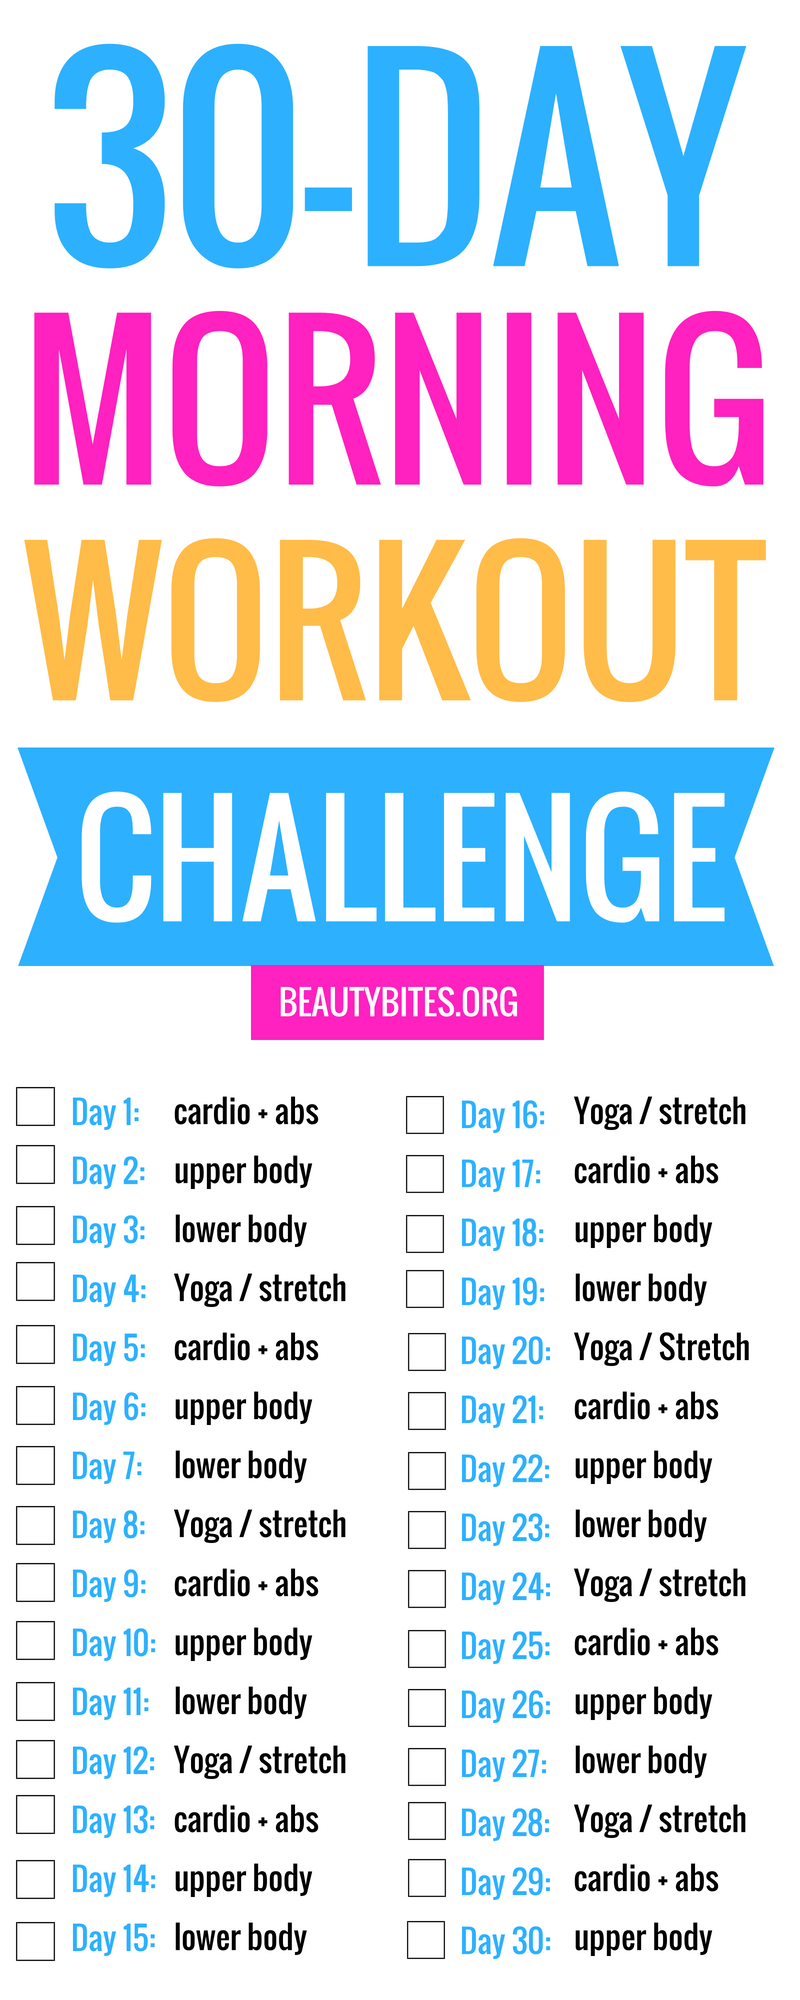 30-Day Morning Workout Challenge! You can exercise at home or at the gym - just do something every morning and enjoy the health benefits of morning exercise for the rest of the day! | www.beautybites.org | Workout Challenge For Beginners